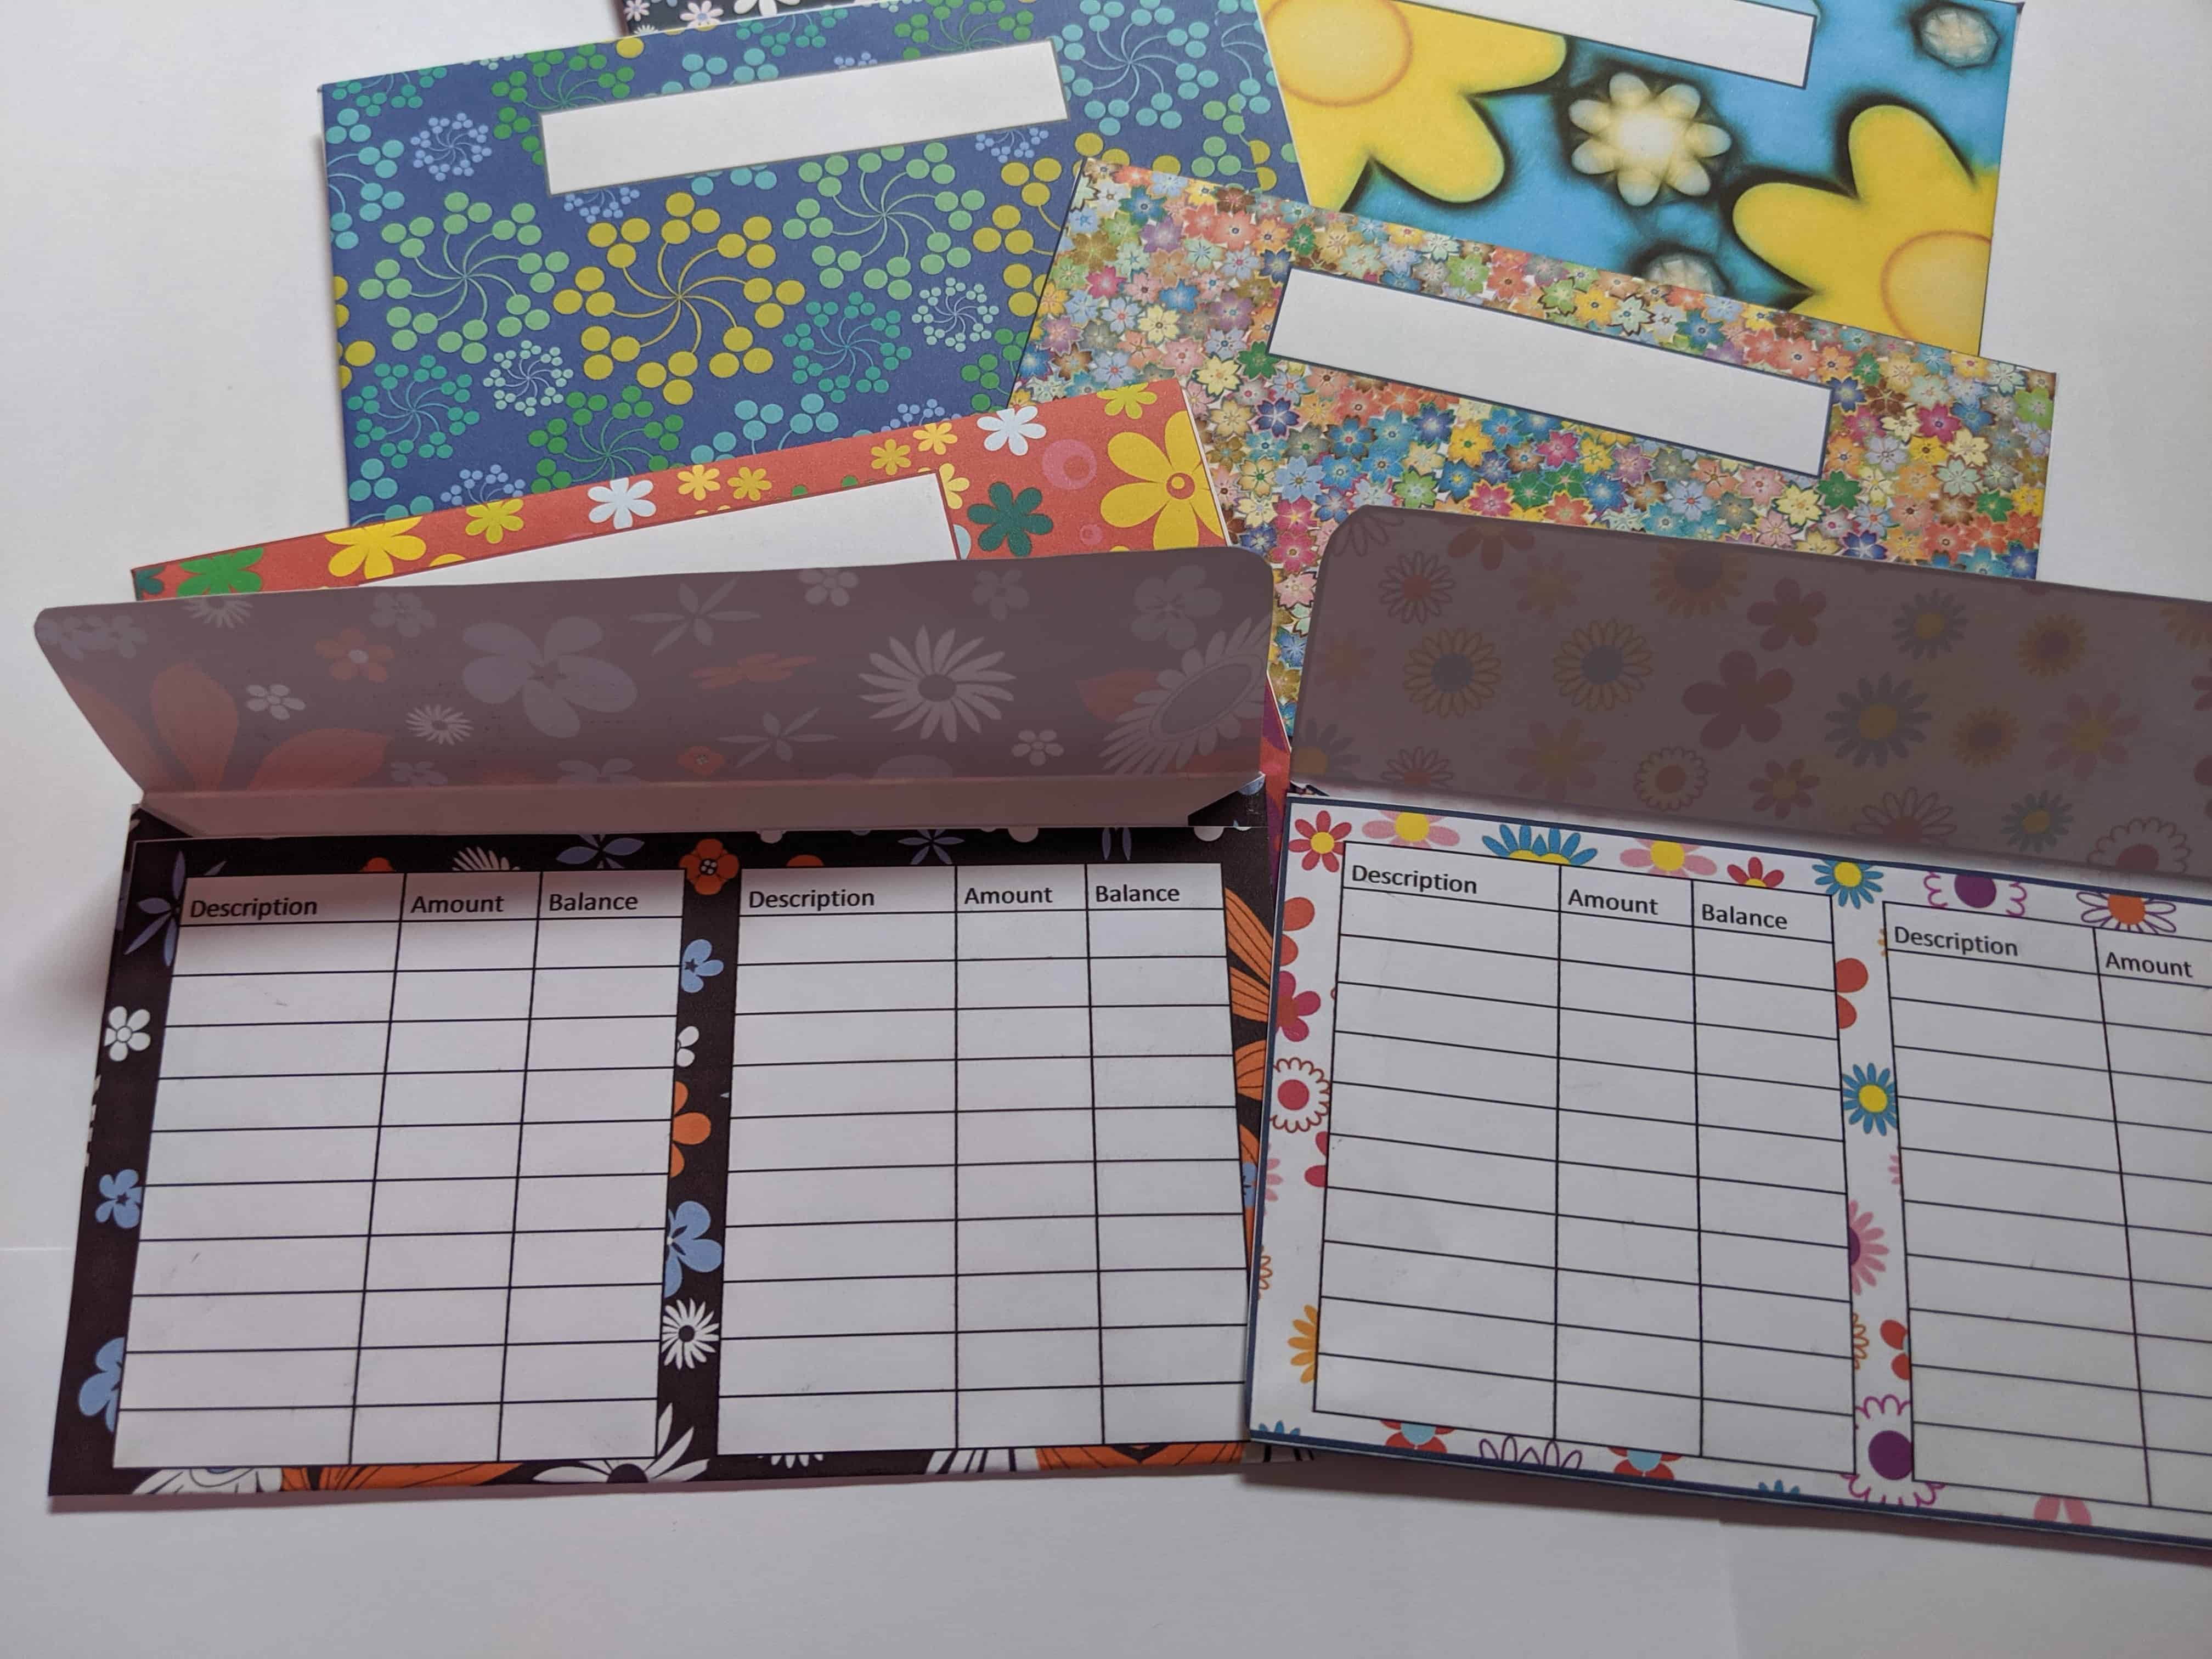 Looking for cute cash envelopes? Here are my cute flower design series money envelopes. Use to complement your monthly budgeting.